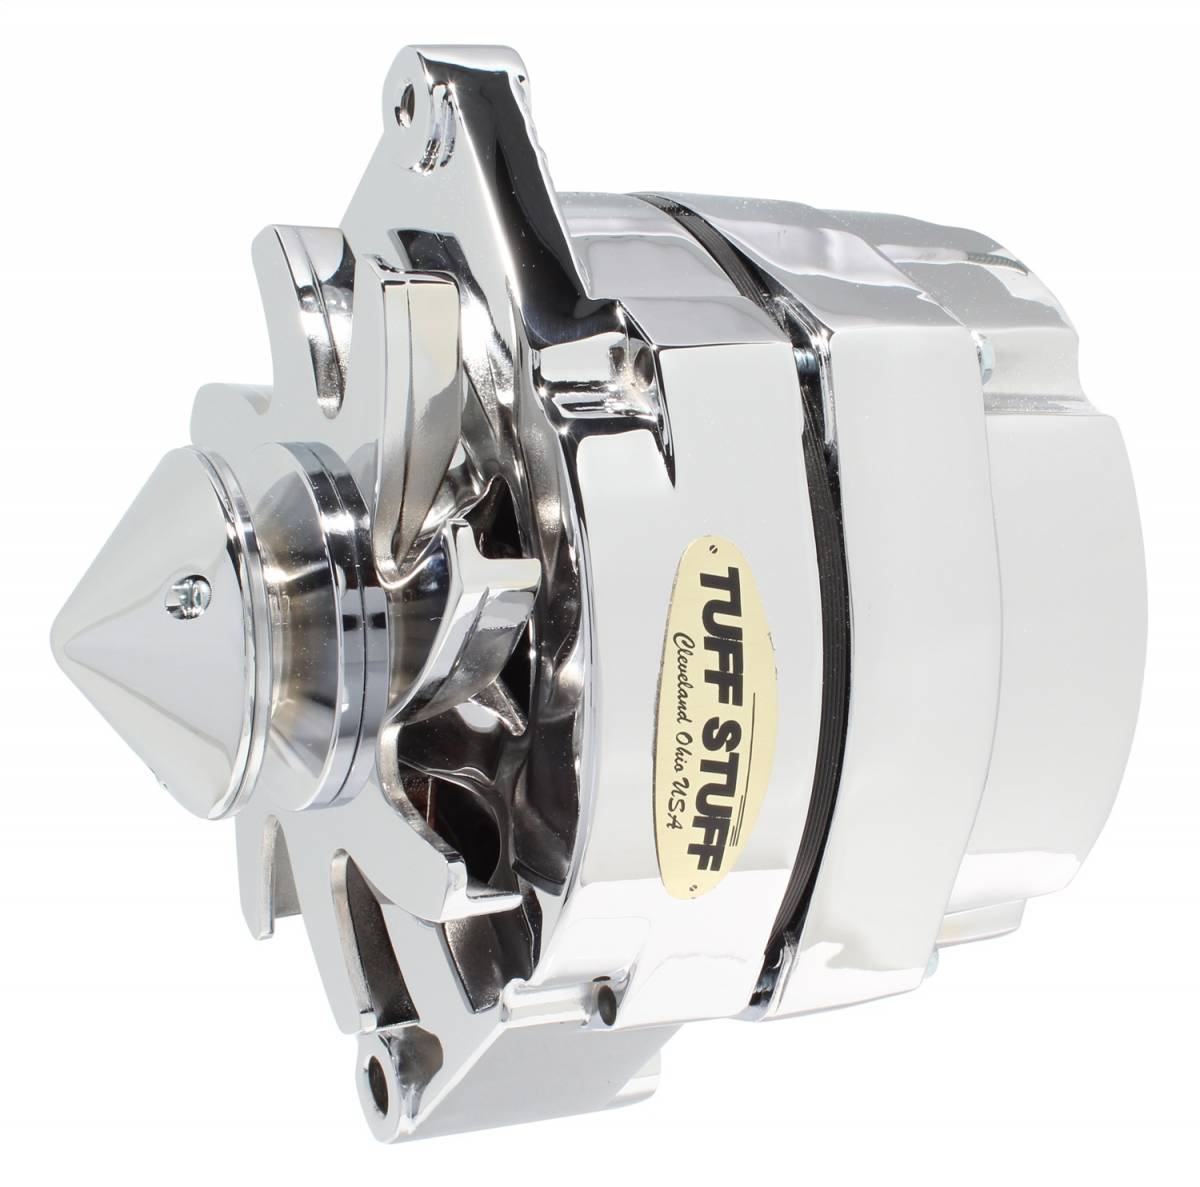 Tuff Stuff Performance - Silver Bullet Alternator 100 AMP OEM Or 1 Wire V Groove Pulley 4.85 in. Case Depth Lower Mount Boss 2 in. Long Polished 7139BBULL